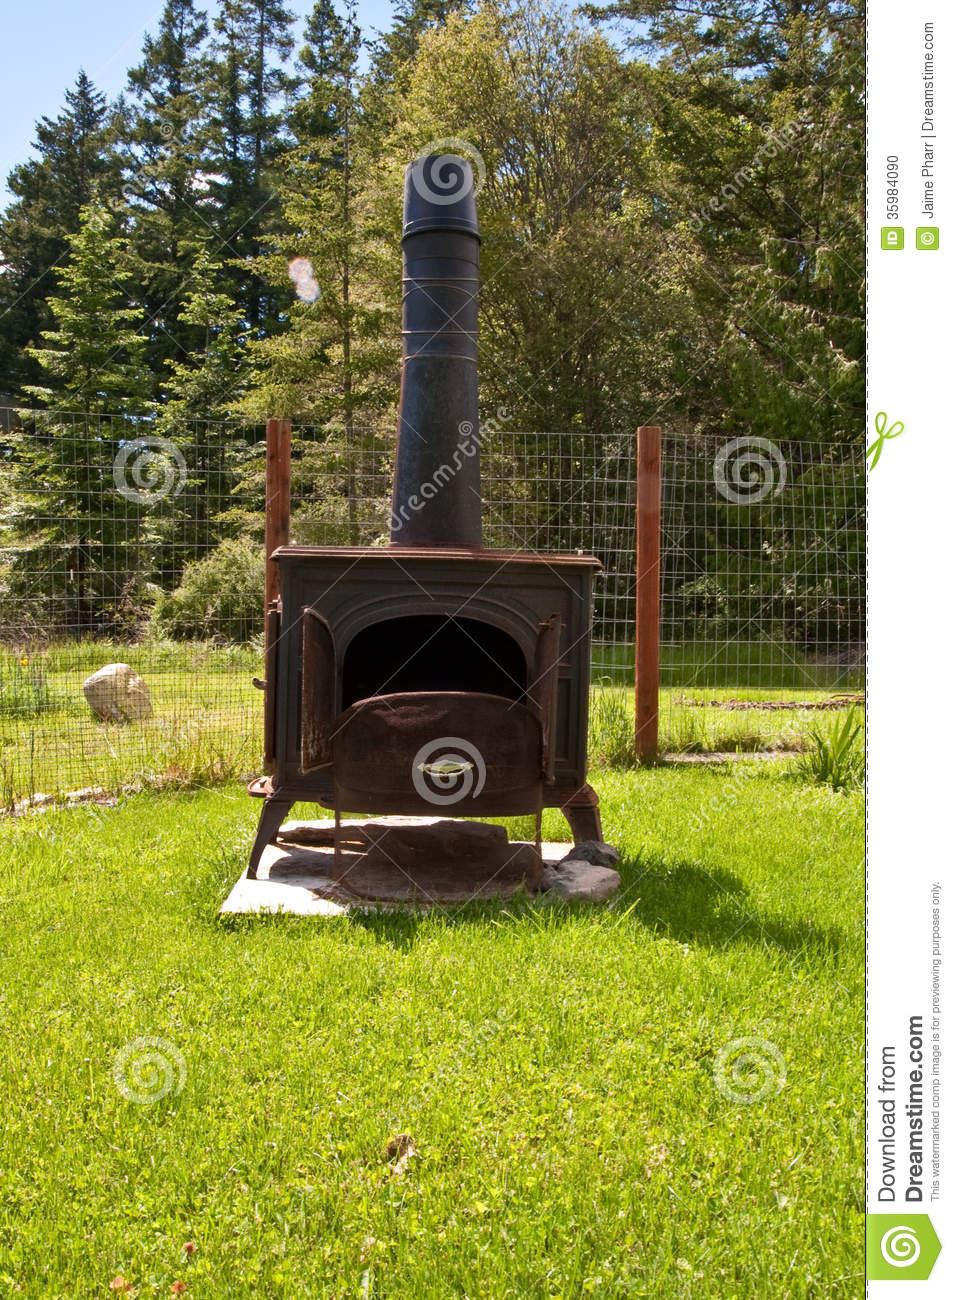 Wood burning stove - Wood Burning Stove Stock Photo - Image: 35984090